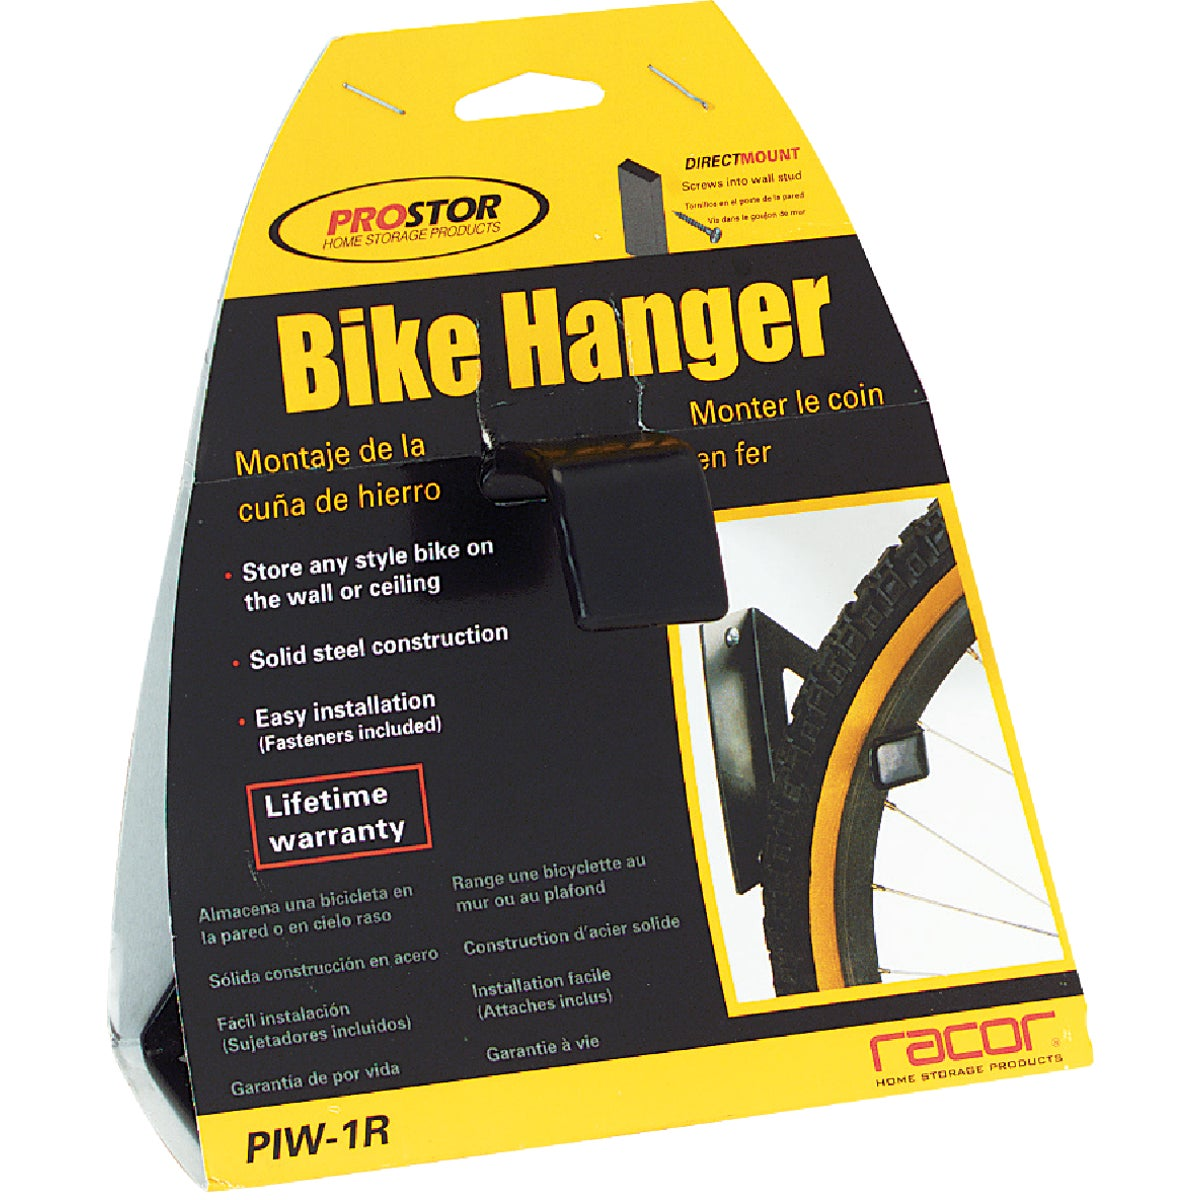 BLK BIKE HANGER - PIW1R by Racor Inc